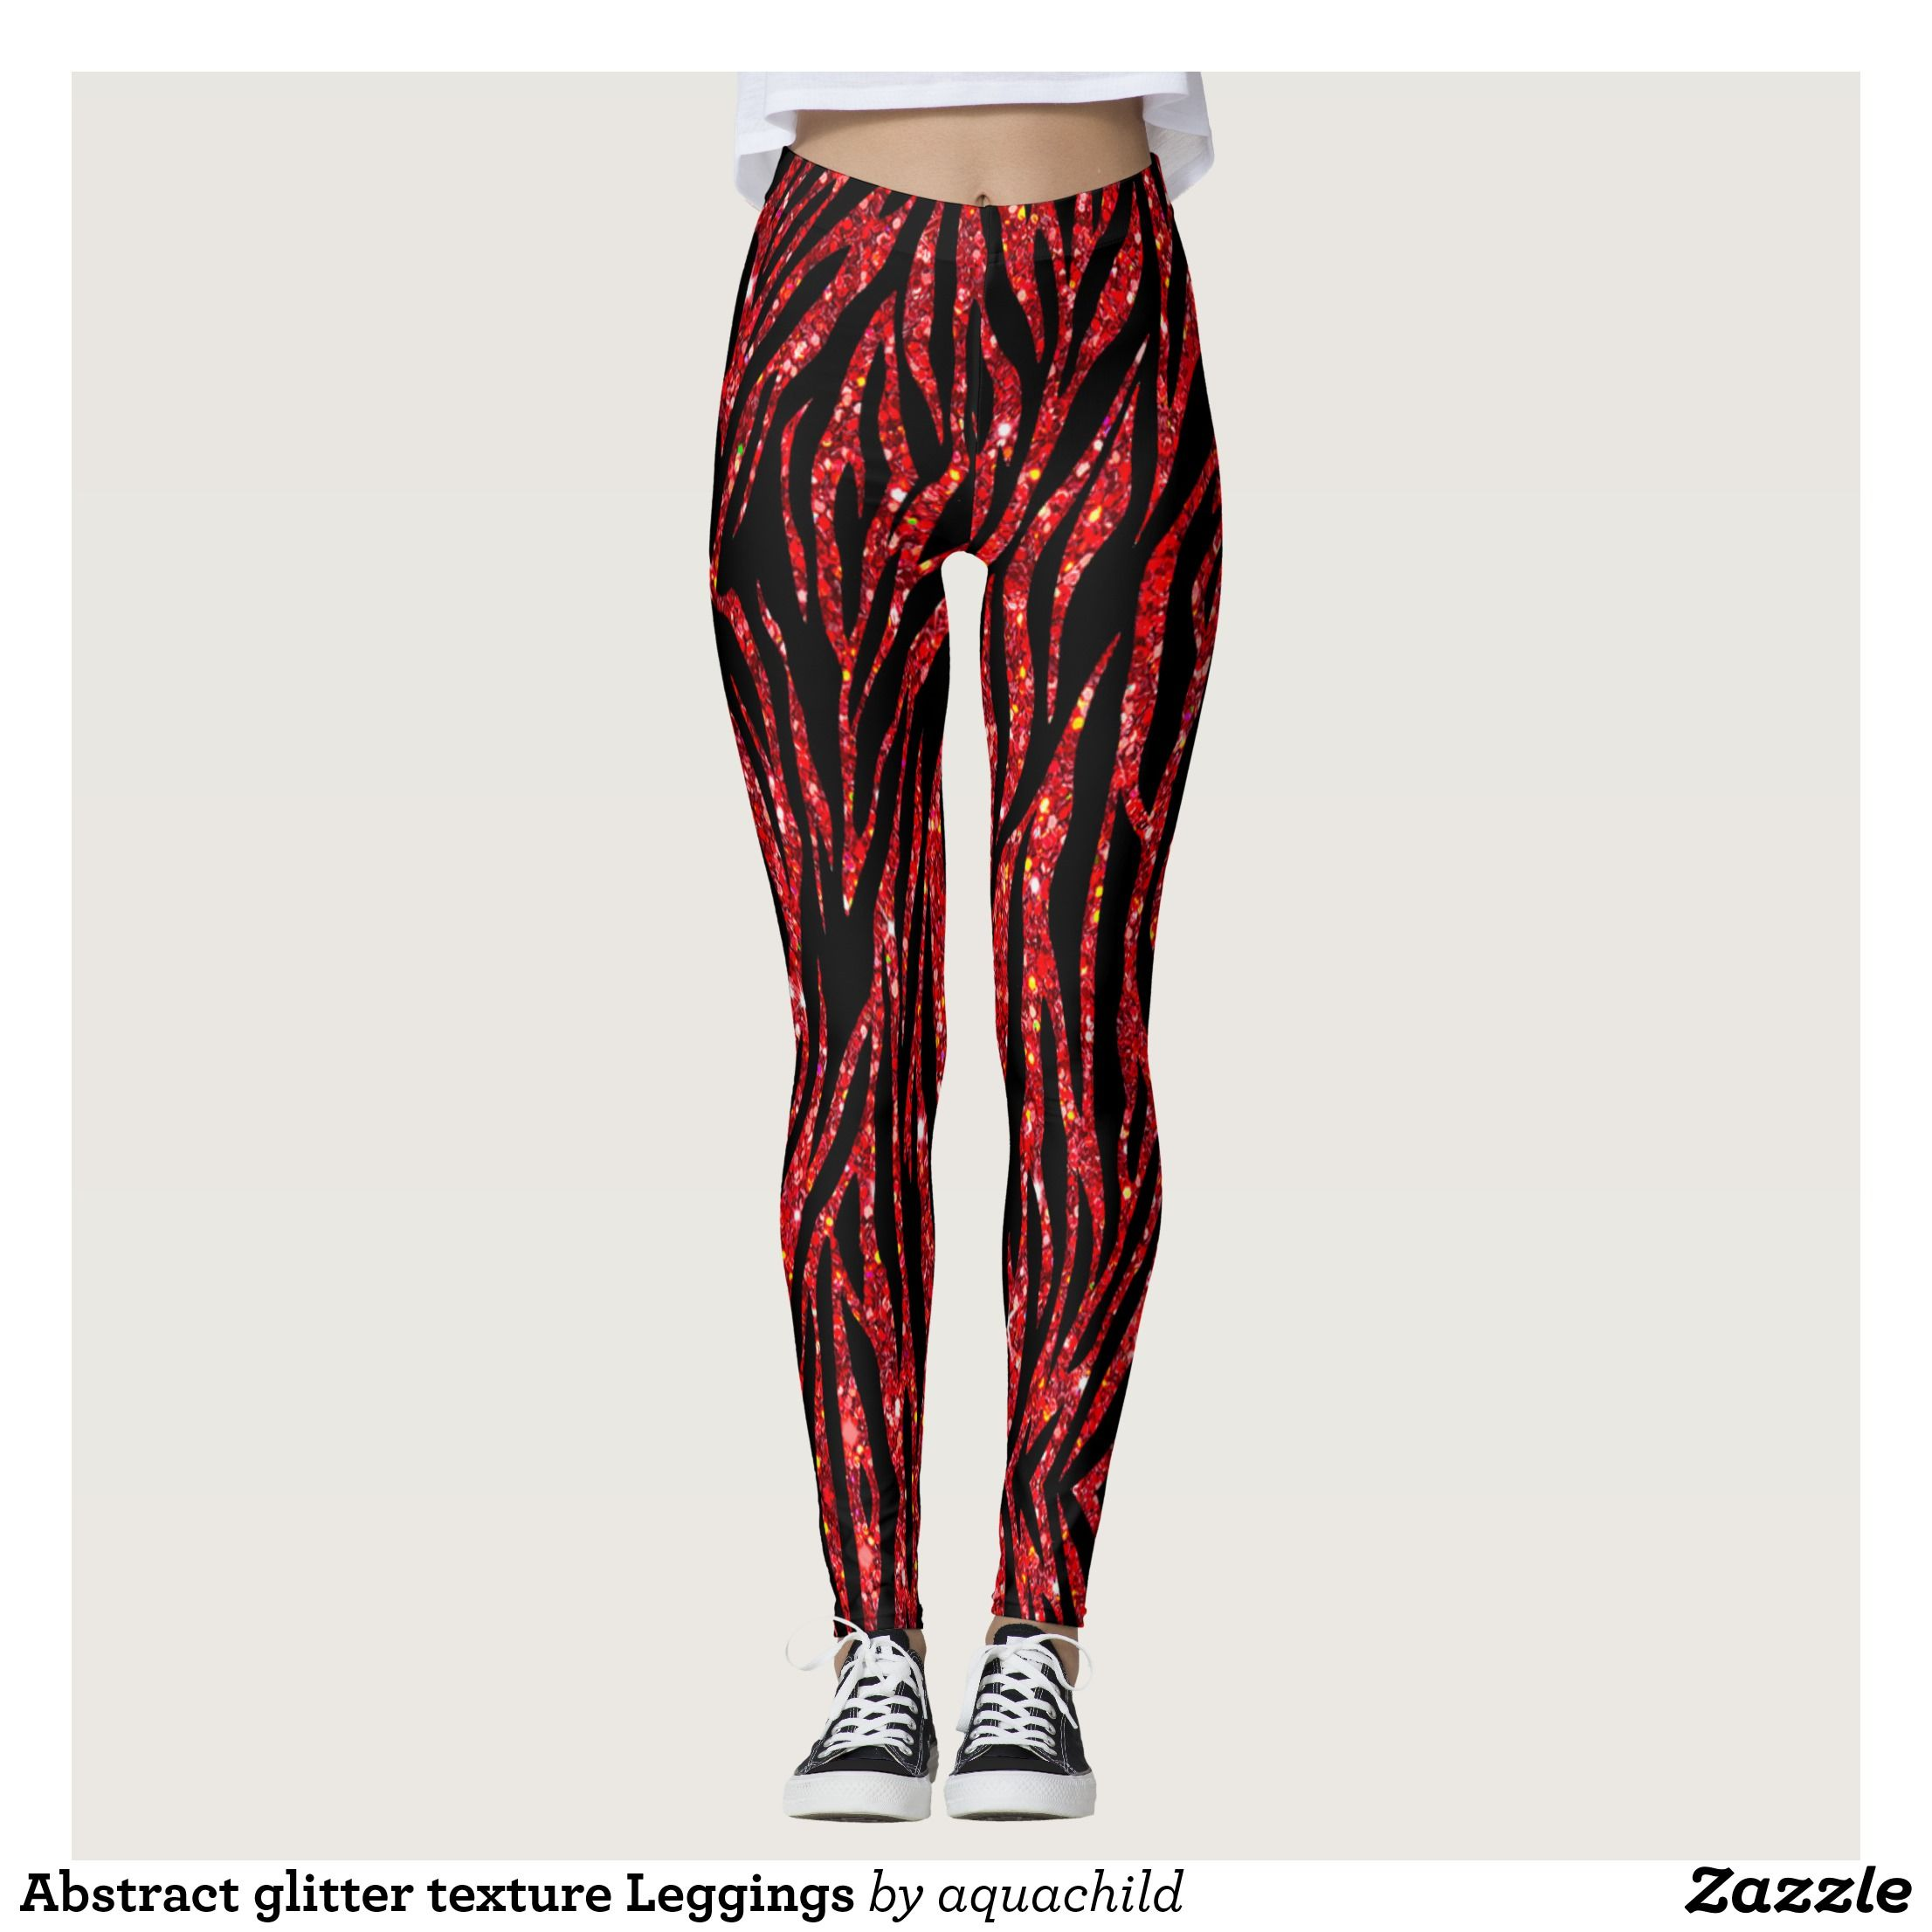 61faf7ca5b Abstract glitter texture Leggings | Zazzle.com in 2019 | jeans ...